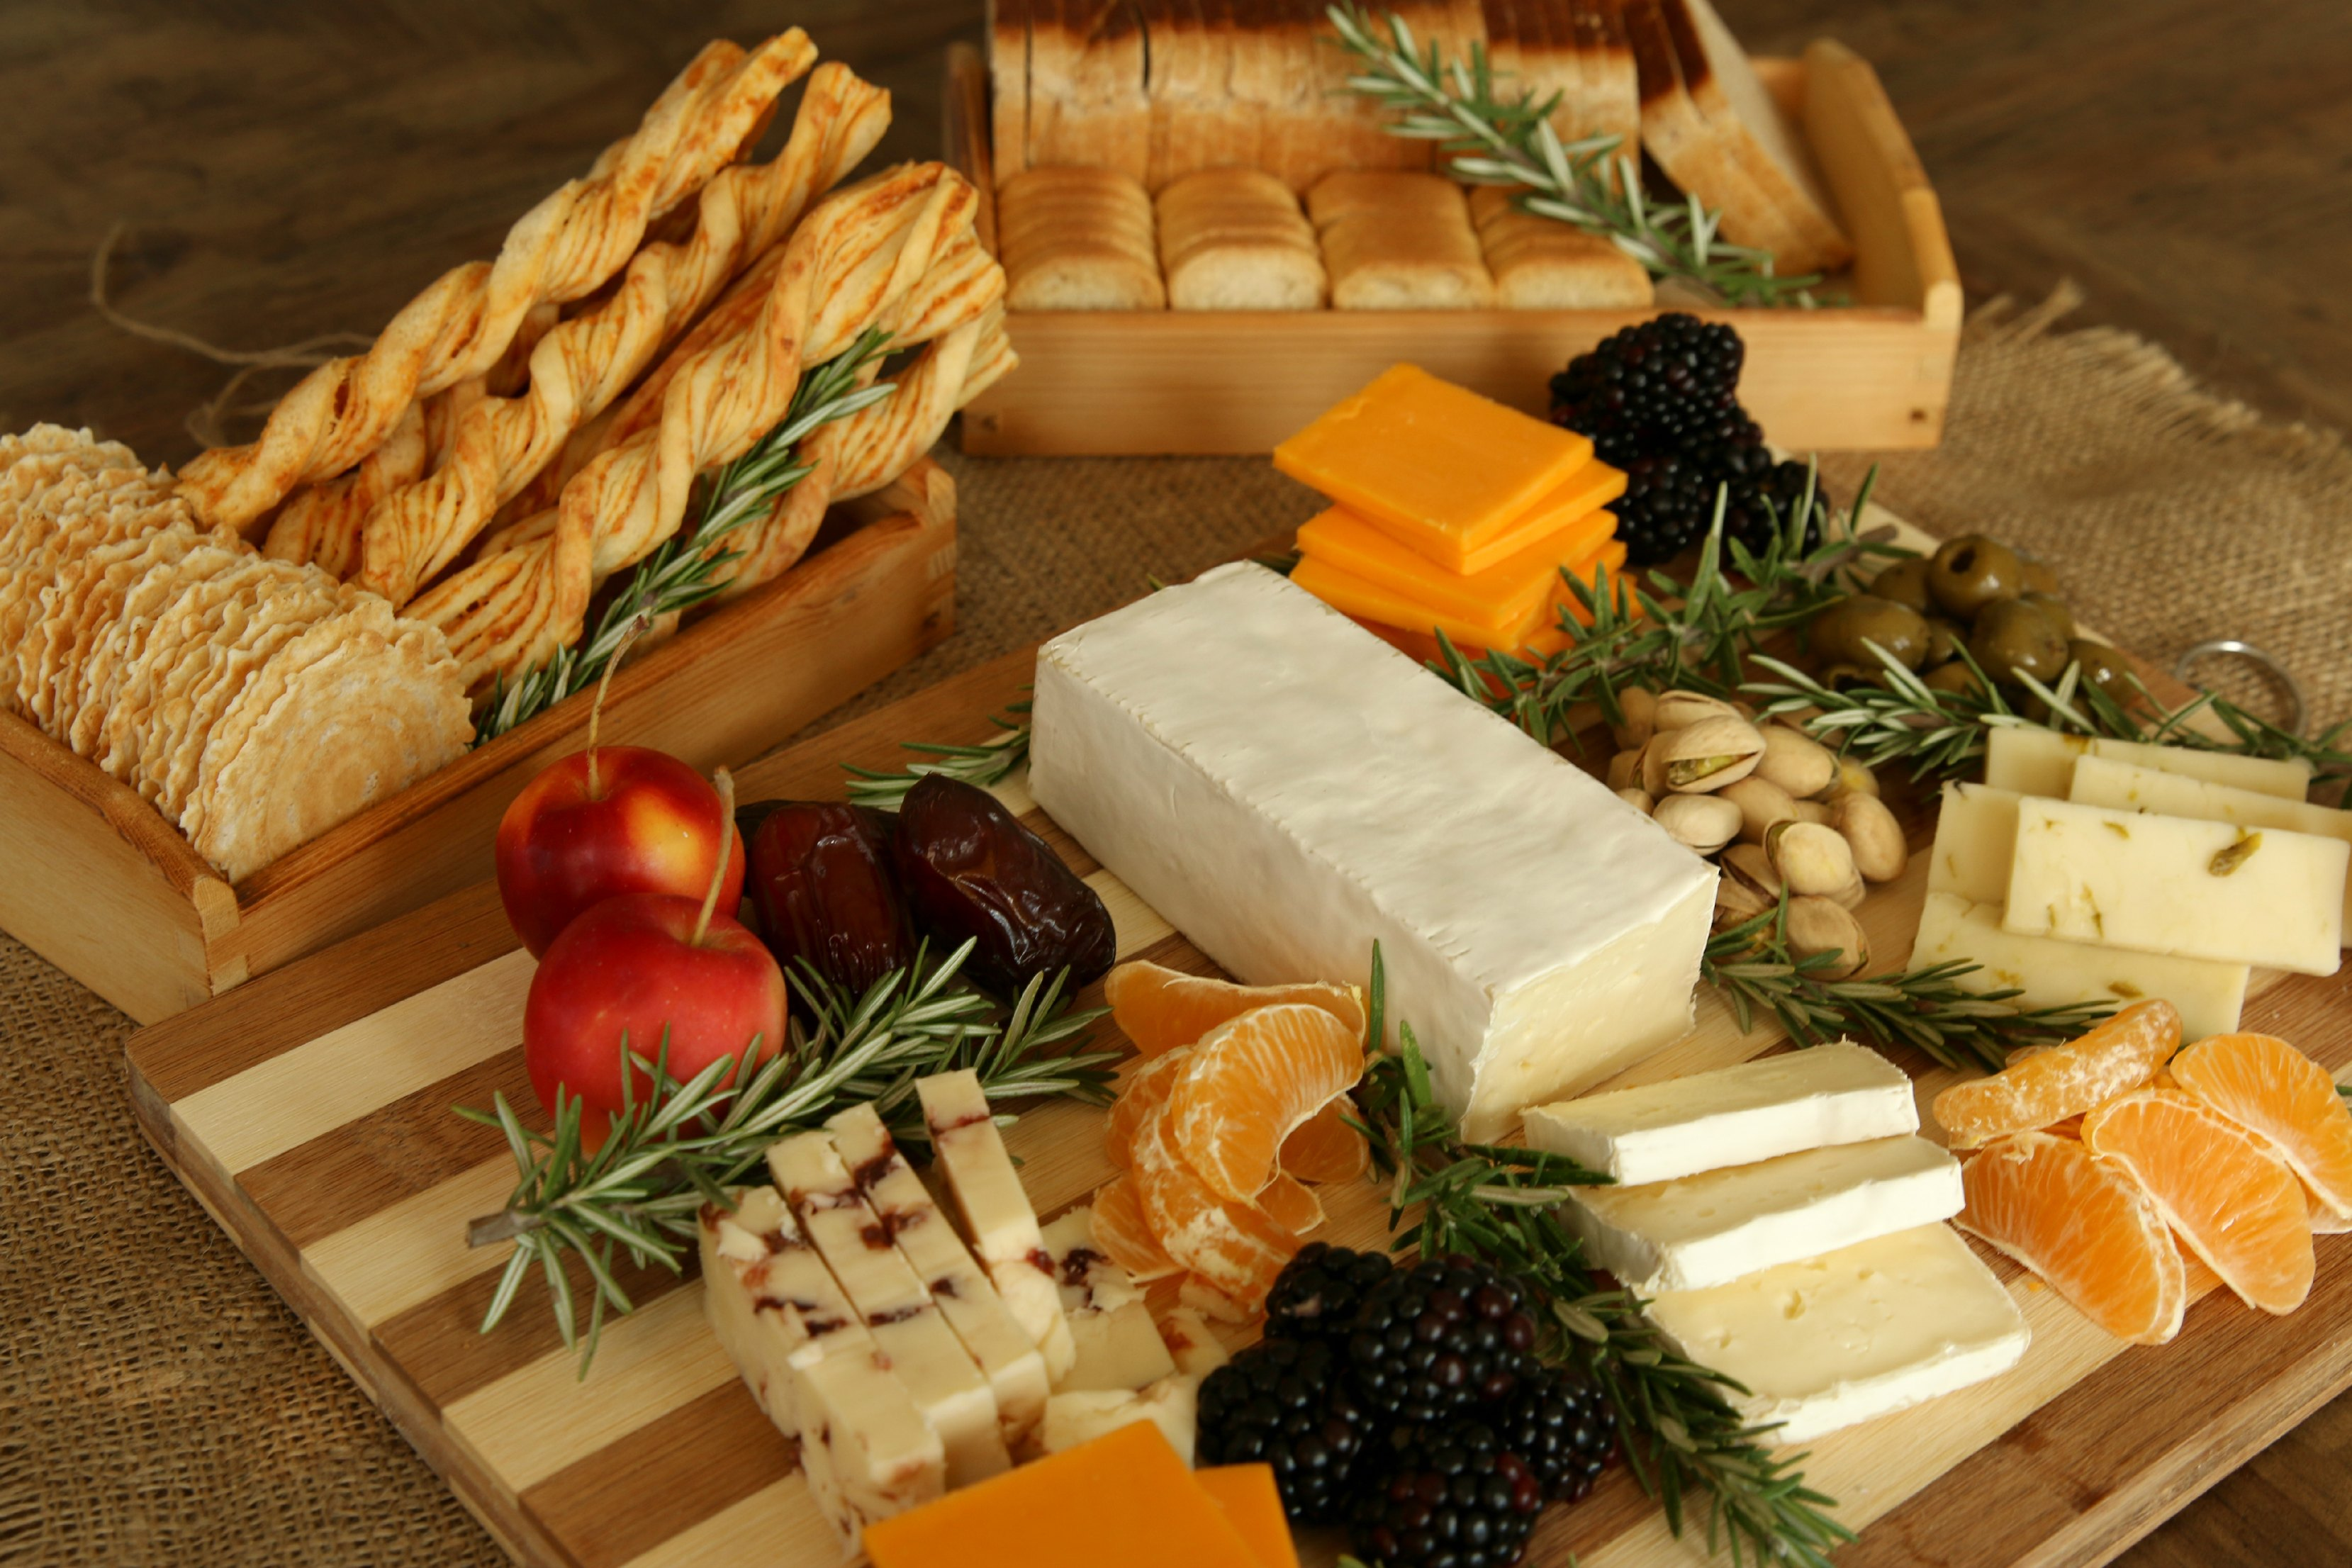 50 Things To Have On Your Thanksgiving Cheese Platter | It's a Lovely Life!